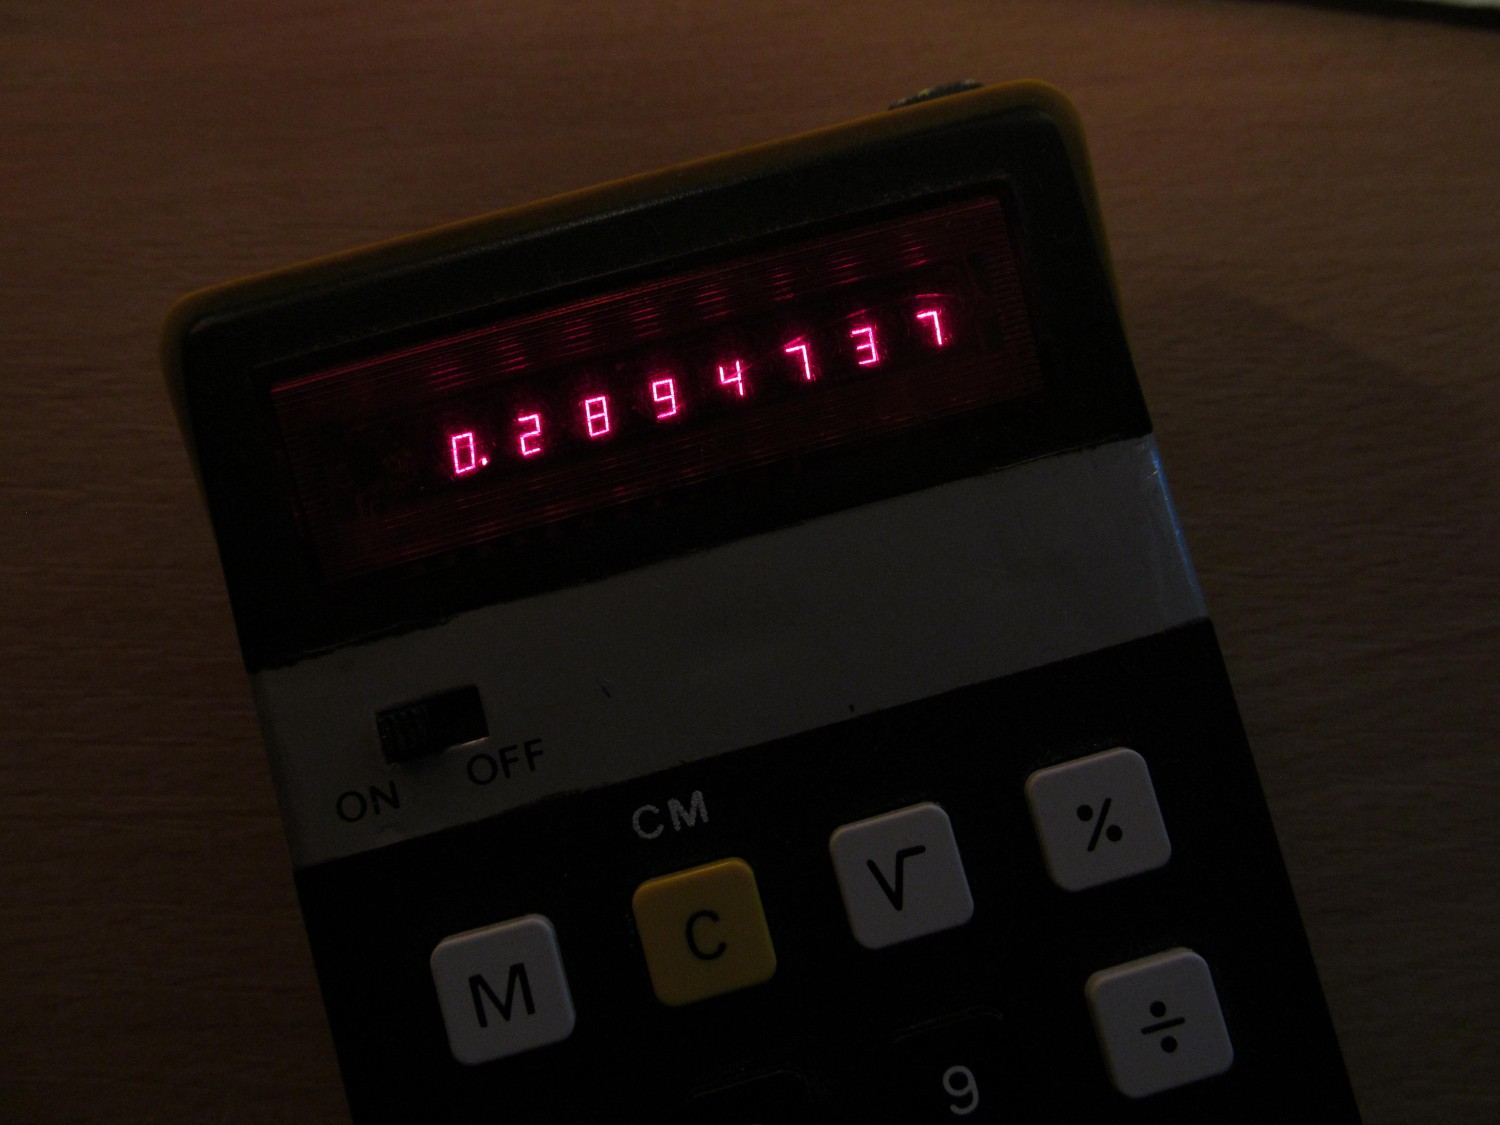 Now Its Proper Hack Details 555 Timer Astable Multivibrator Circuit Technology Hacking While I Used Back On The Envelope Guess Calculations In Previous Log Had To Take Out Big Caliber Weapon At This One